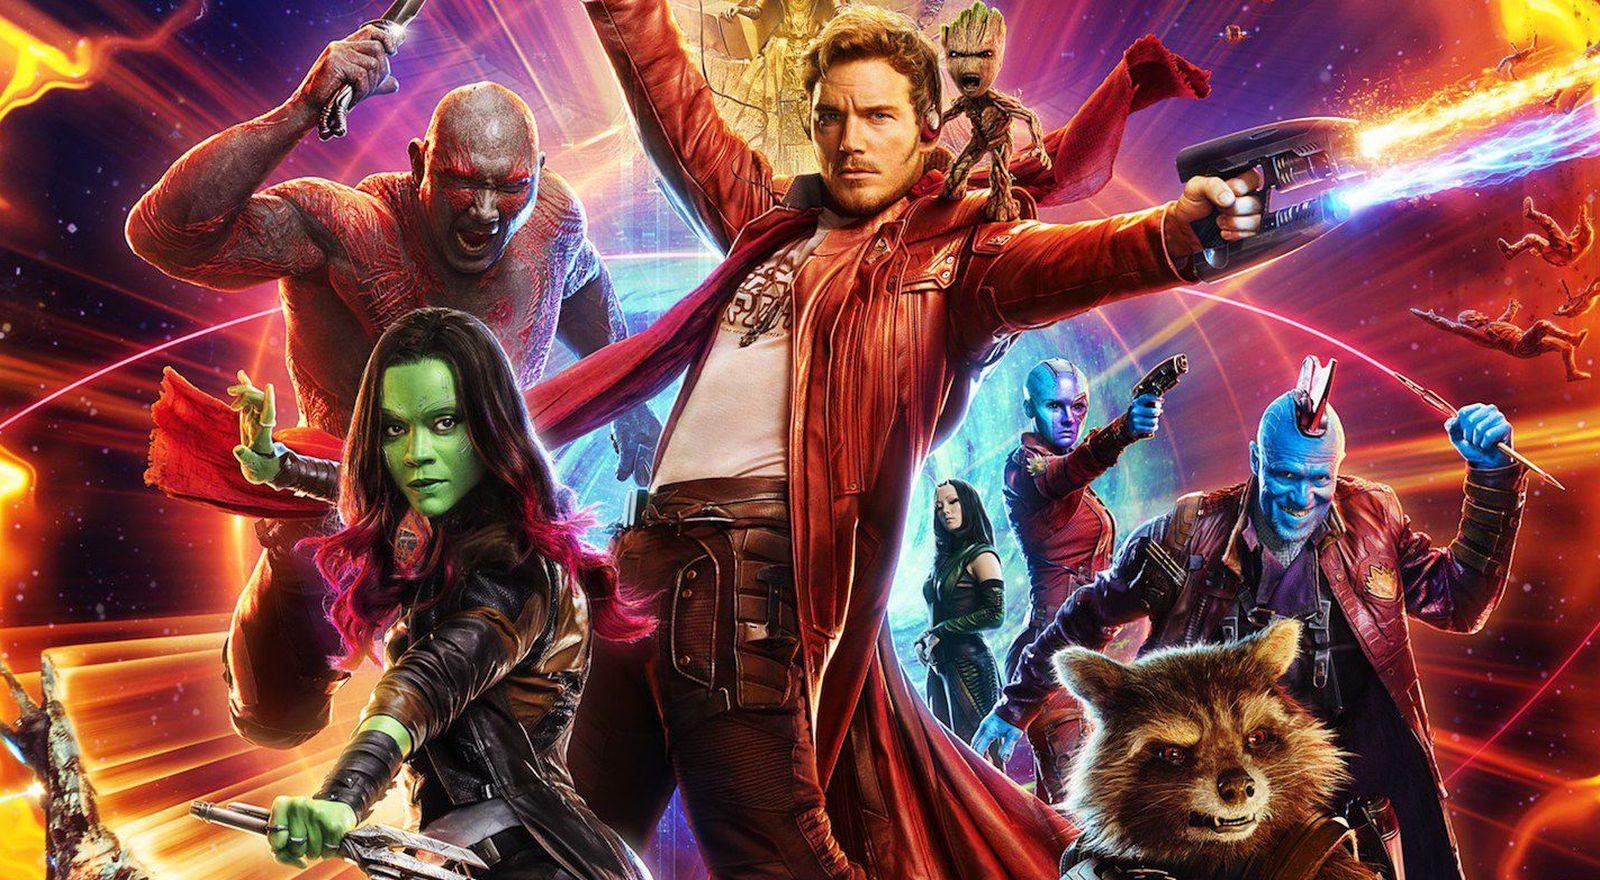 Guardians of the Galaxy Vol 2 (2017) Filmkritik